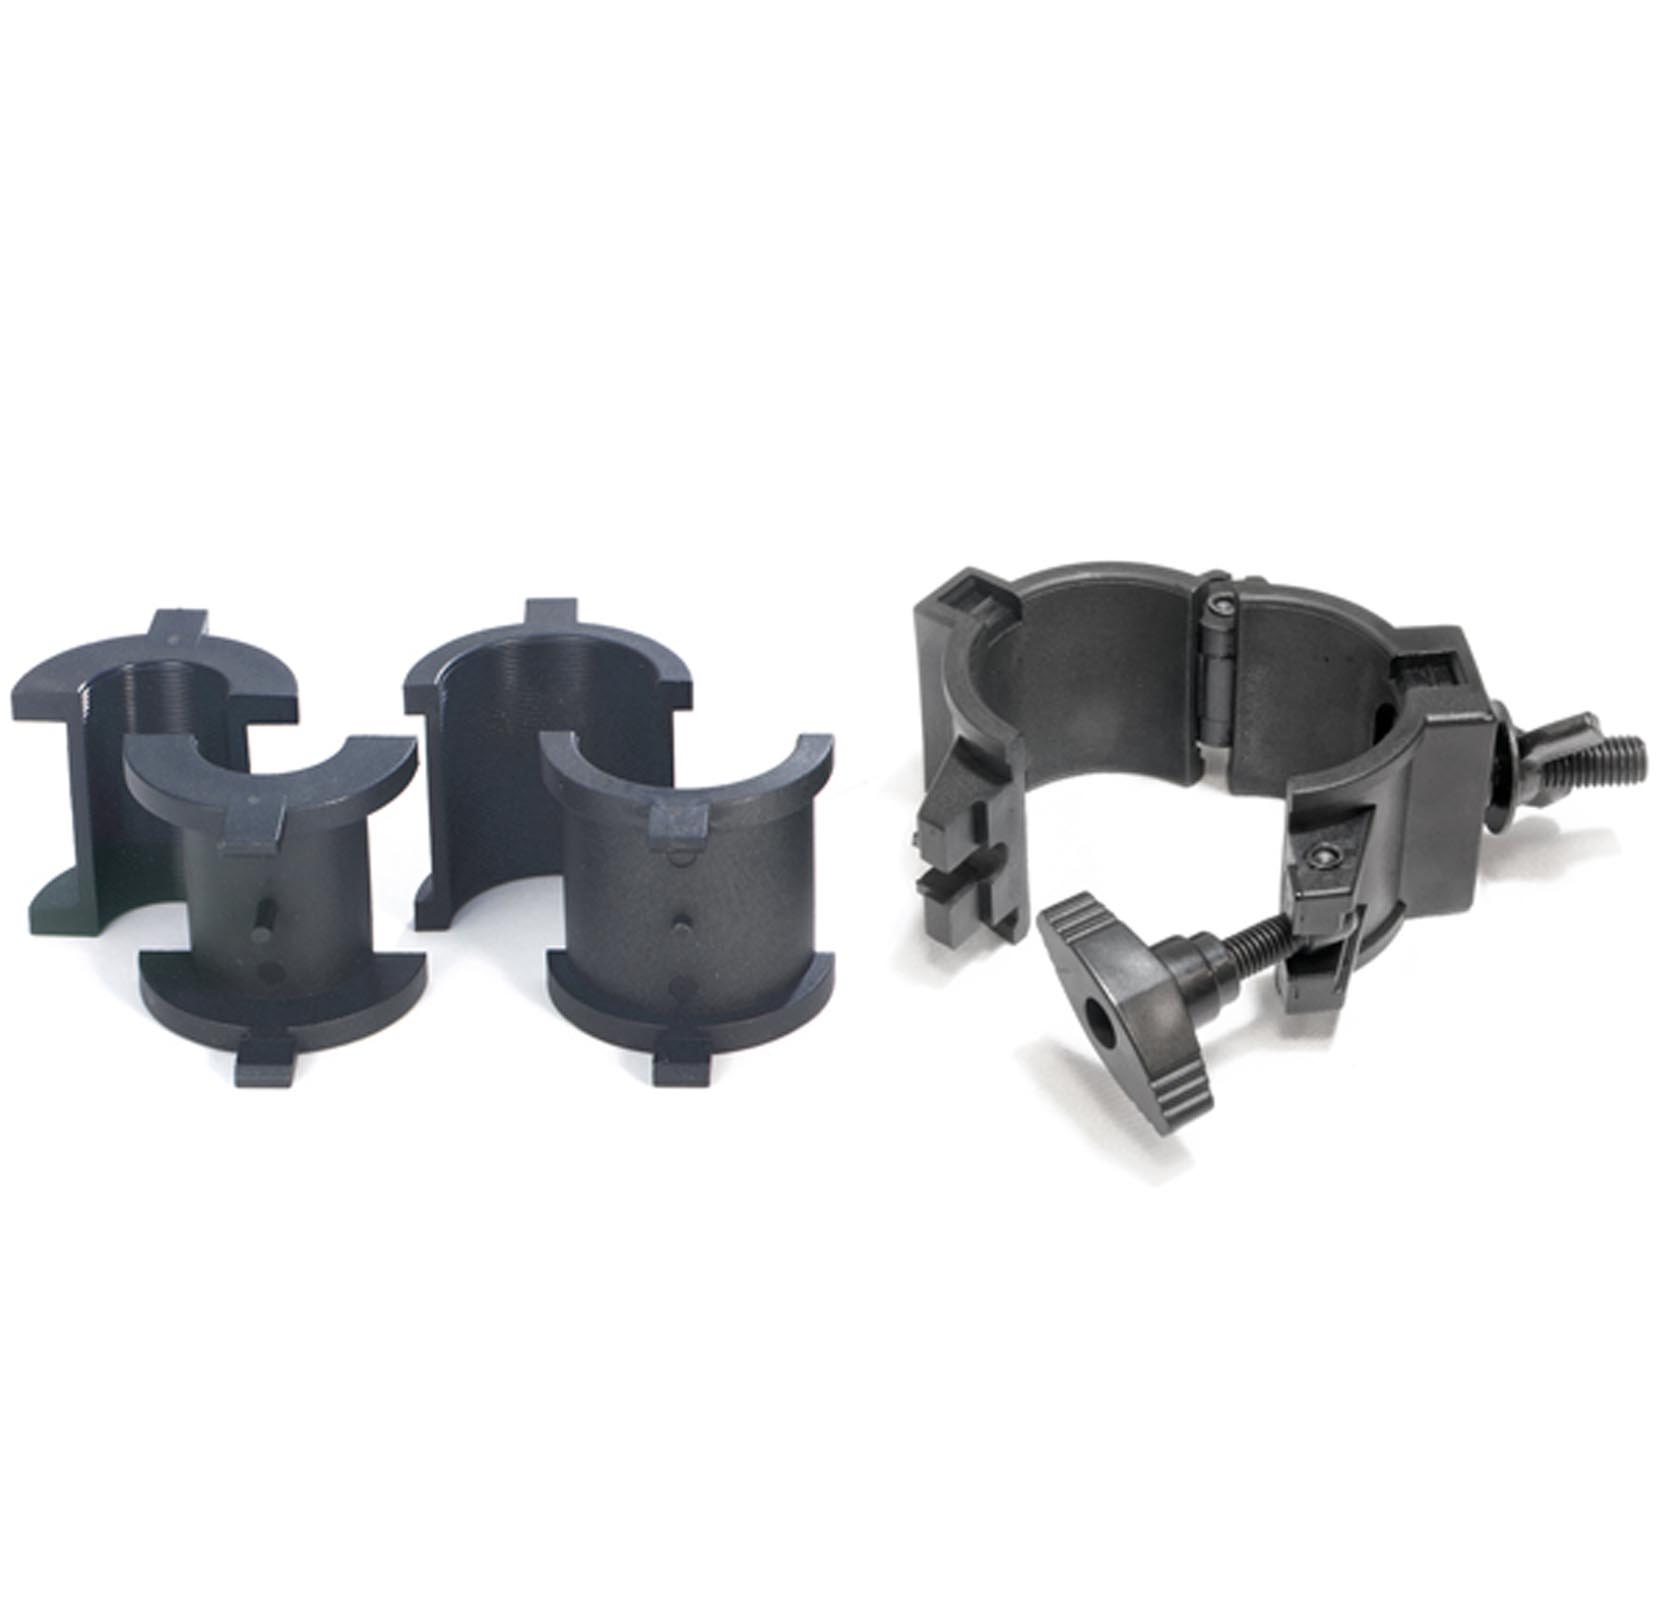 Chauvet 360° Wrap Around O-Clamps Truss Light Mounting - 75 lb Capacity (8 Pack) - image 1 of 2